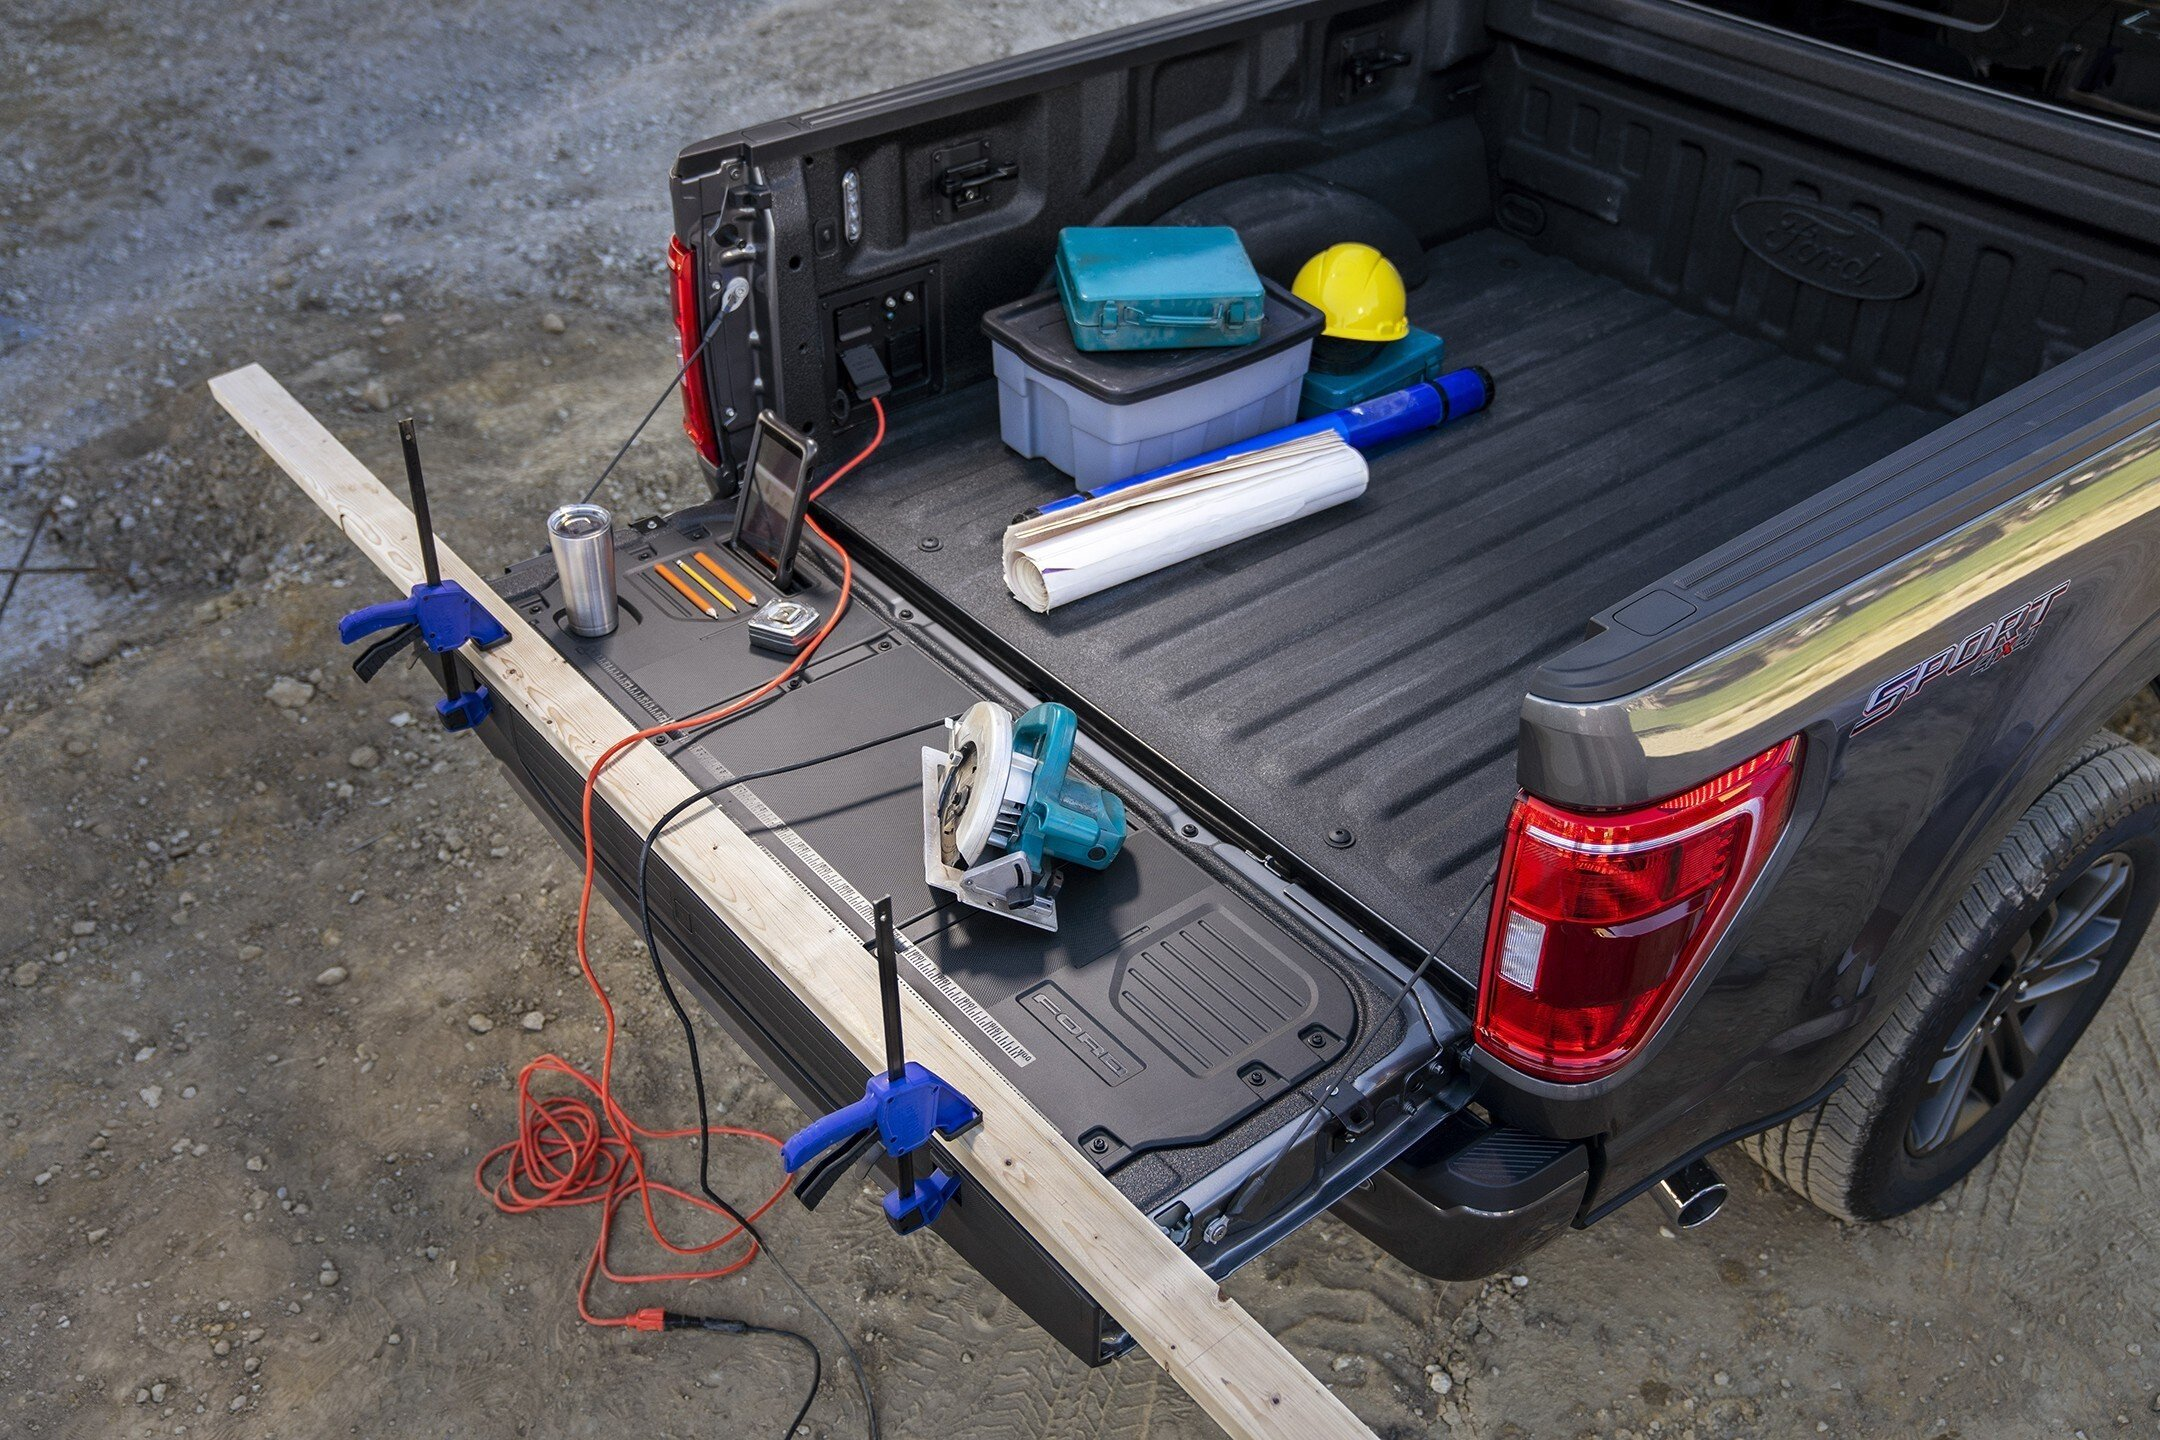 2021 F-150 redesigned tailgate